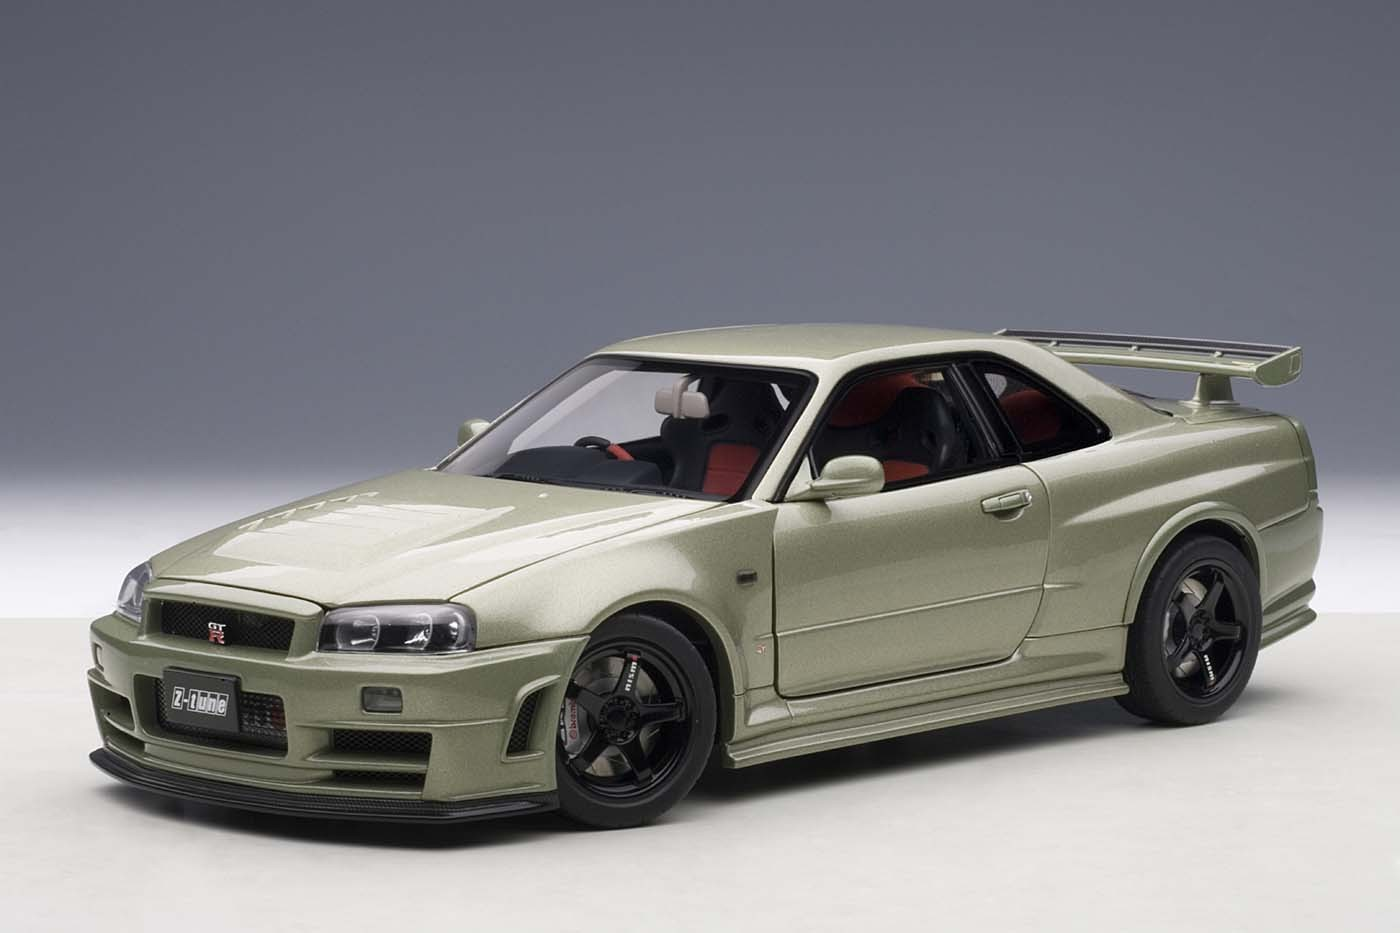 Autoart Die Cast Model Nissan R34 Gt R Z Tune Skyline Millennium Jade Green 77353 Limited To 1000 Pieces World Wide Die Cast Model In 1 18 Scale Item Au77353 Eztoys Diecast Models And Collectibles